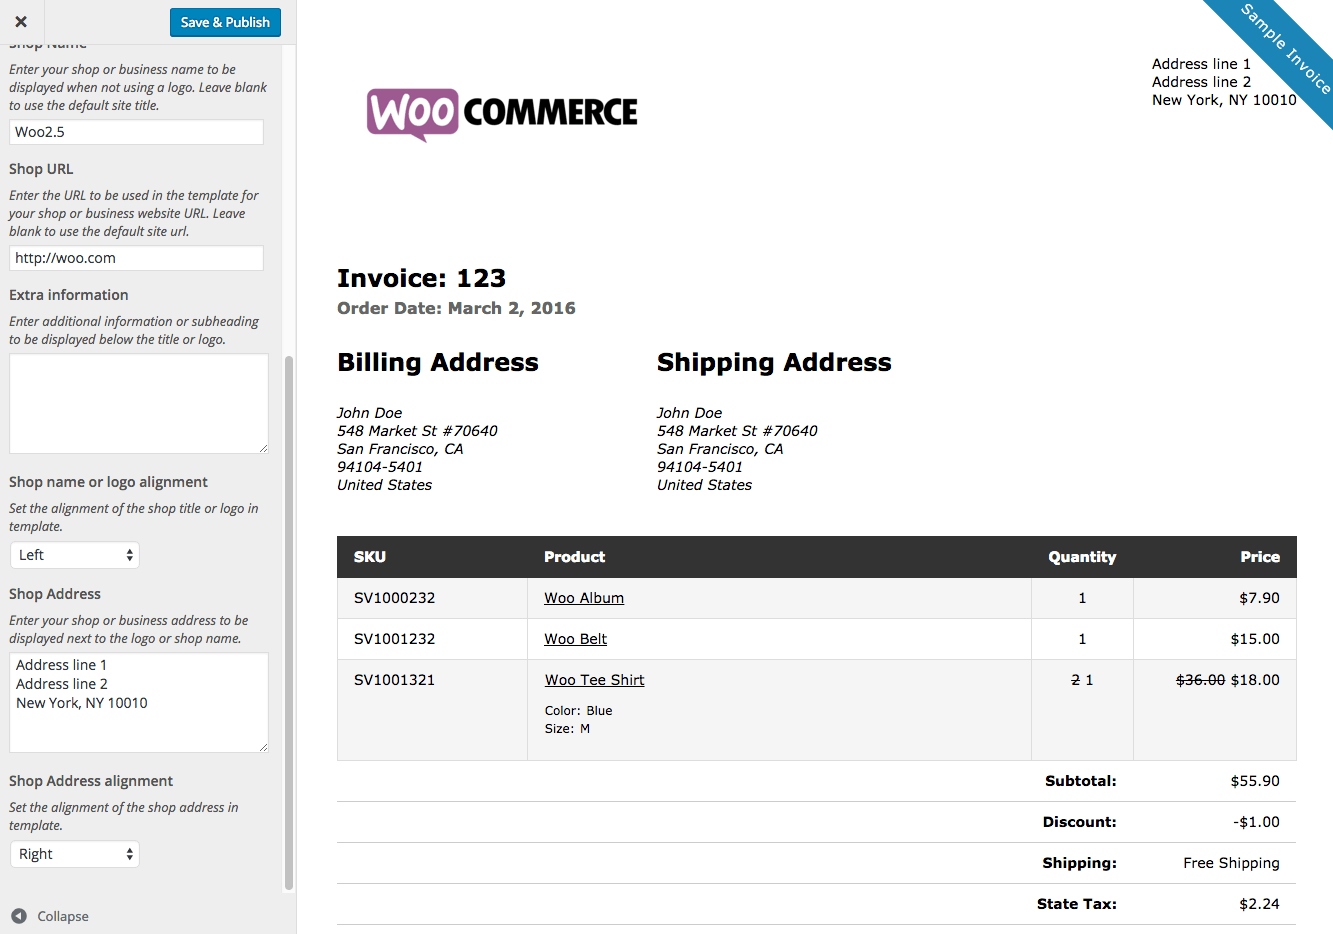 Weirdmailus  Surprising Woocommerce Print Invoices Amp Packing Lists  Woocommerce Docs With Likable Woocommerce Print Invoices  Packing Lists Customizer With Divine Tax Receipt Requirements Also Acknowledgement Of Receipt Of Money In Addition Microsoft Word Receipt And Receipts Online Free As Well As What Is The Tracking Number On A Post Office Receipt Additionally A Receipt Template From Docswoocommercecom With Weirdmailus  Likable Woocommerce Print Invoices Amp Packing Lists  Woocommerce Docs With Divine Woocommerce Print Invoices  Packing Lists Customizer And Surprising Tax Receipt Requirements Also Acknowledgement Of Receipt Of Money In Addition Microsoft Word Receipt From Docswoocommercecom